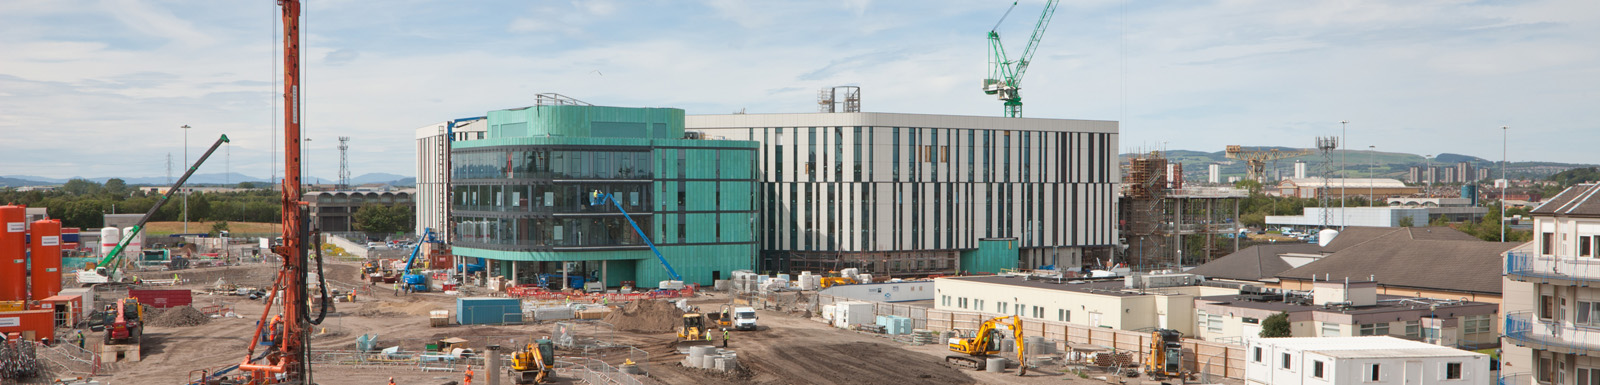 Construction work continues apace at the new South Glasgow Hospital campus